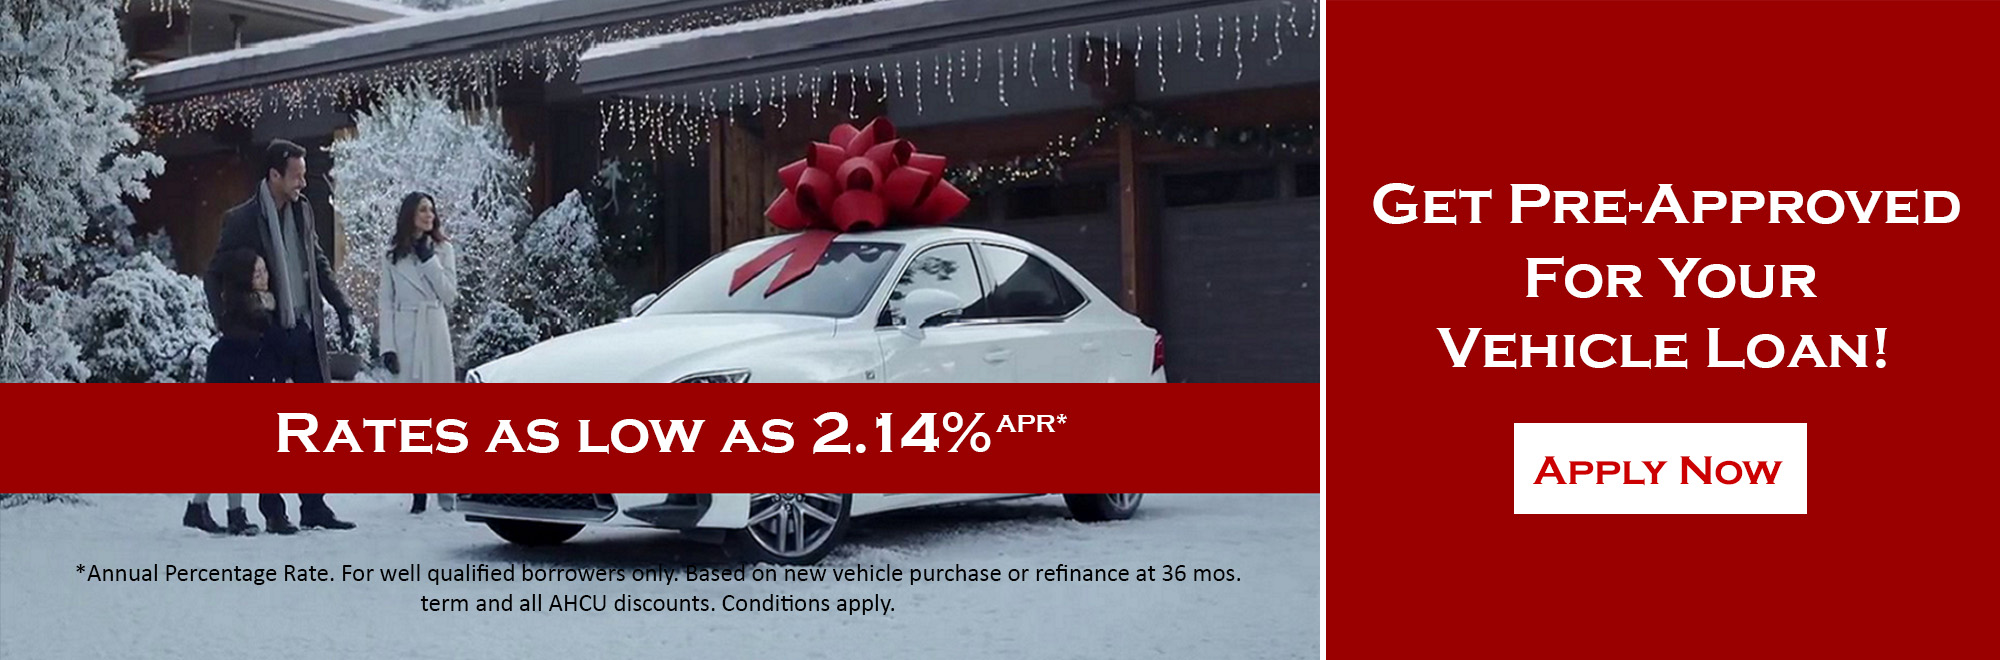 Get pre-approved for a vehicle loan as loan as 2.14% for well qualified borrowers. Conditions apply.